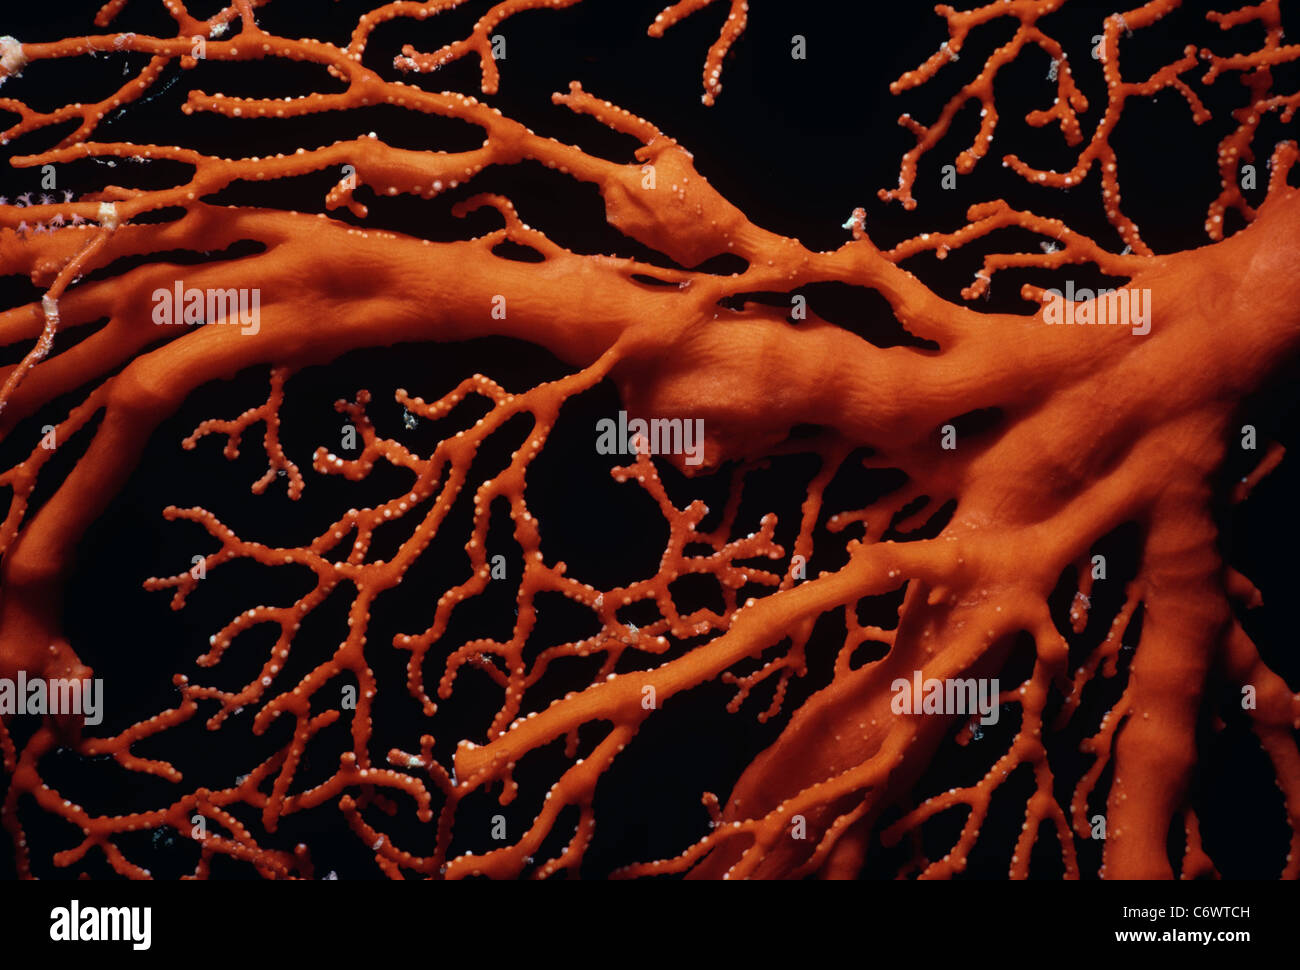 Scarlet Sea Fan Gorgonia Coral (Melithaea sp.), Palau Islands, Micronesia, Pacific Ocean - Stock Image